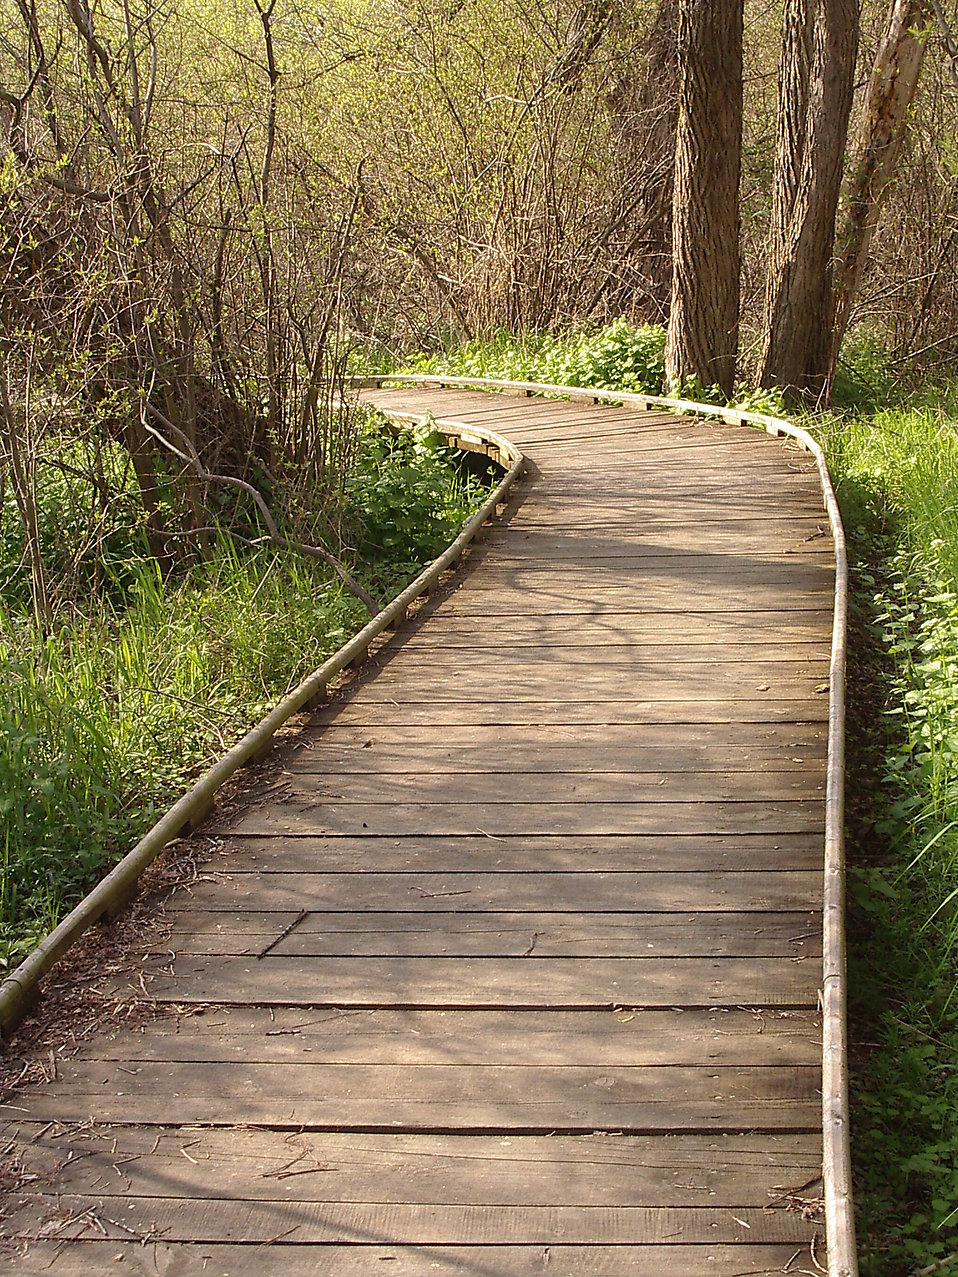 Boardwalk in the Forest : Free Stock Photo